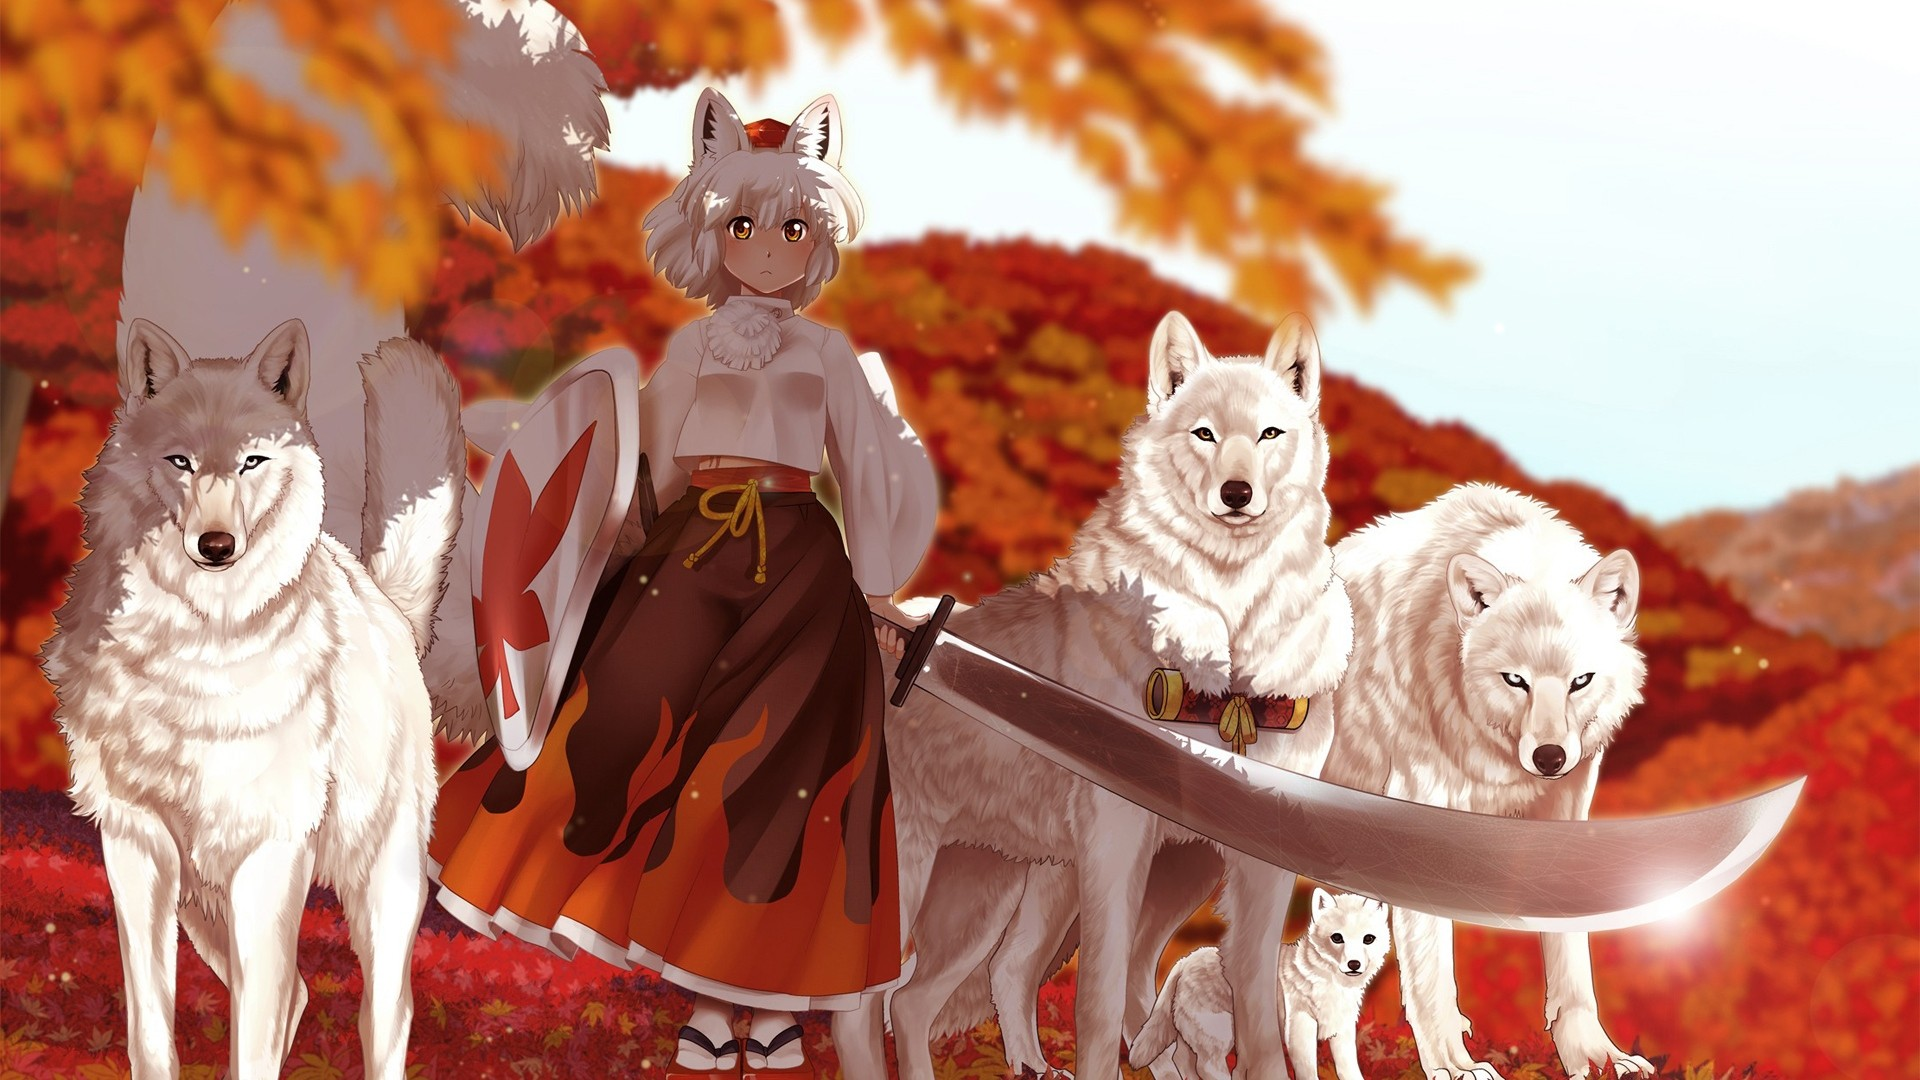 Hd Fall Wallpaper Iphone 5 Anime Fall Wallpapers 59 Images